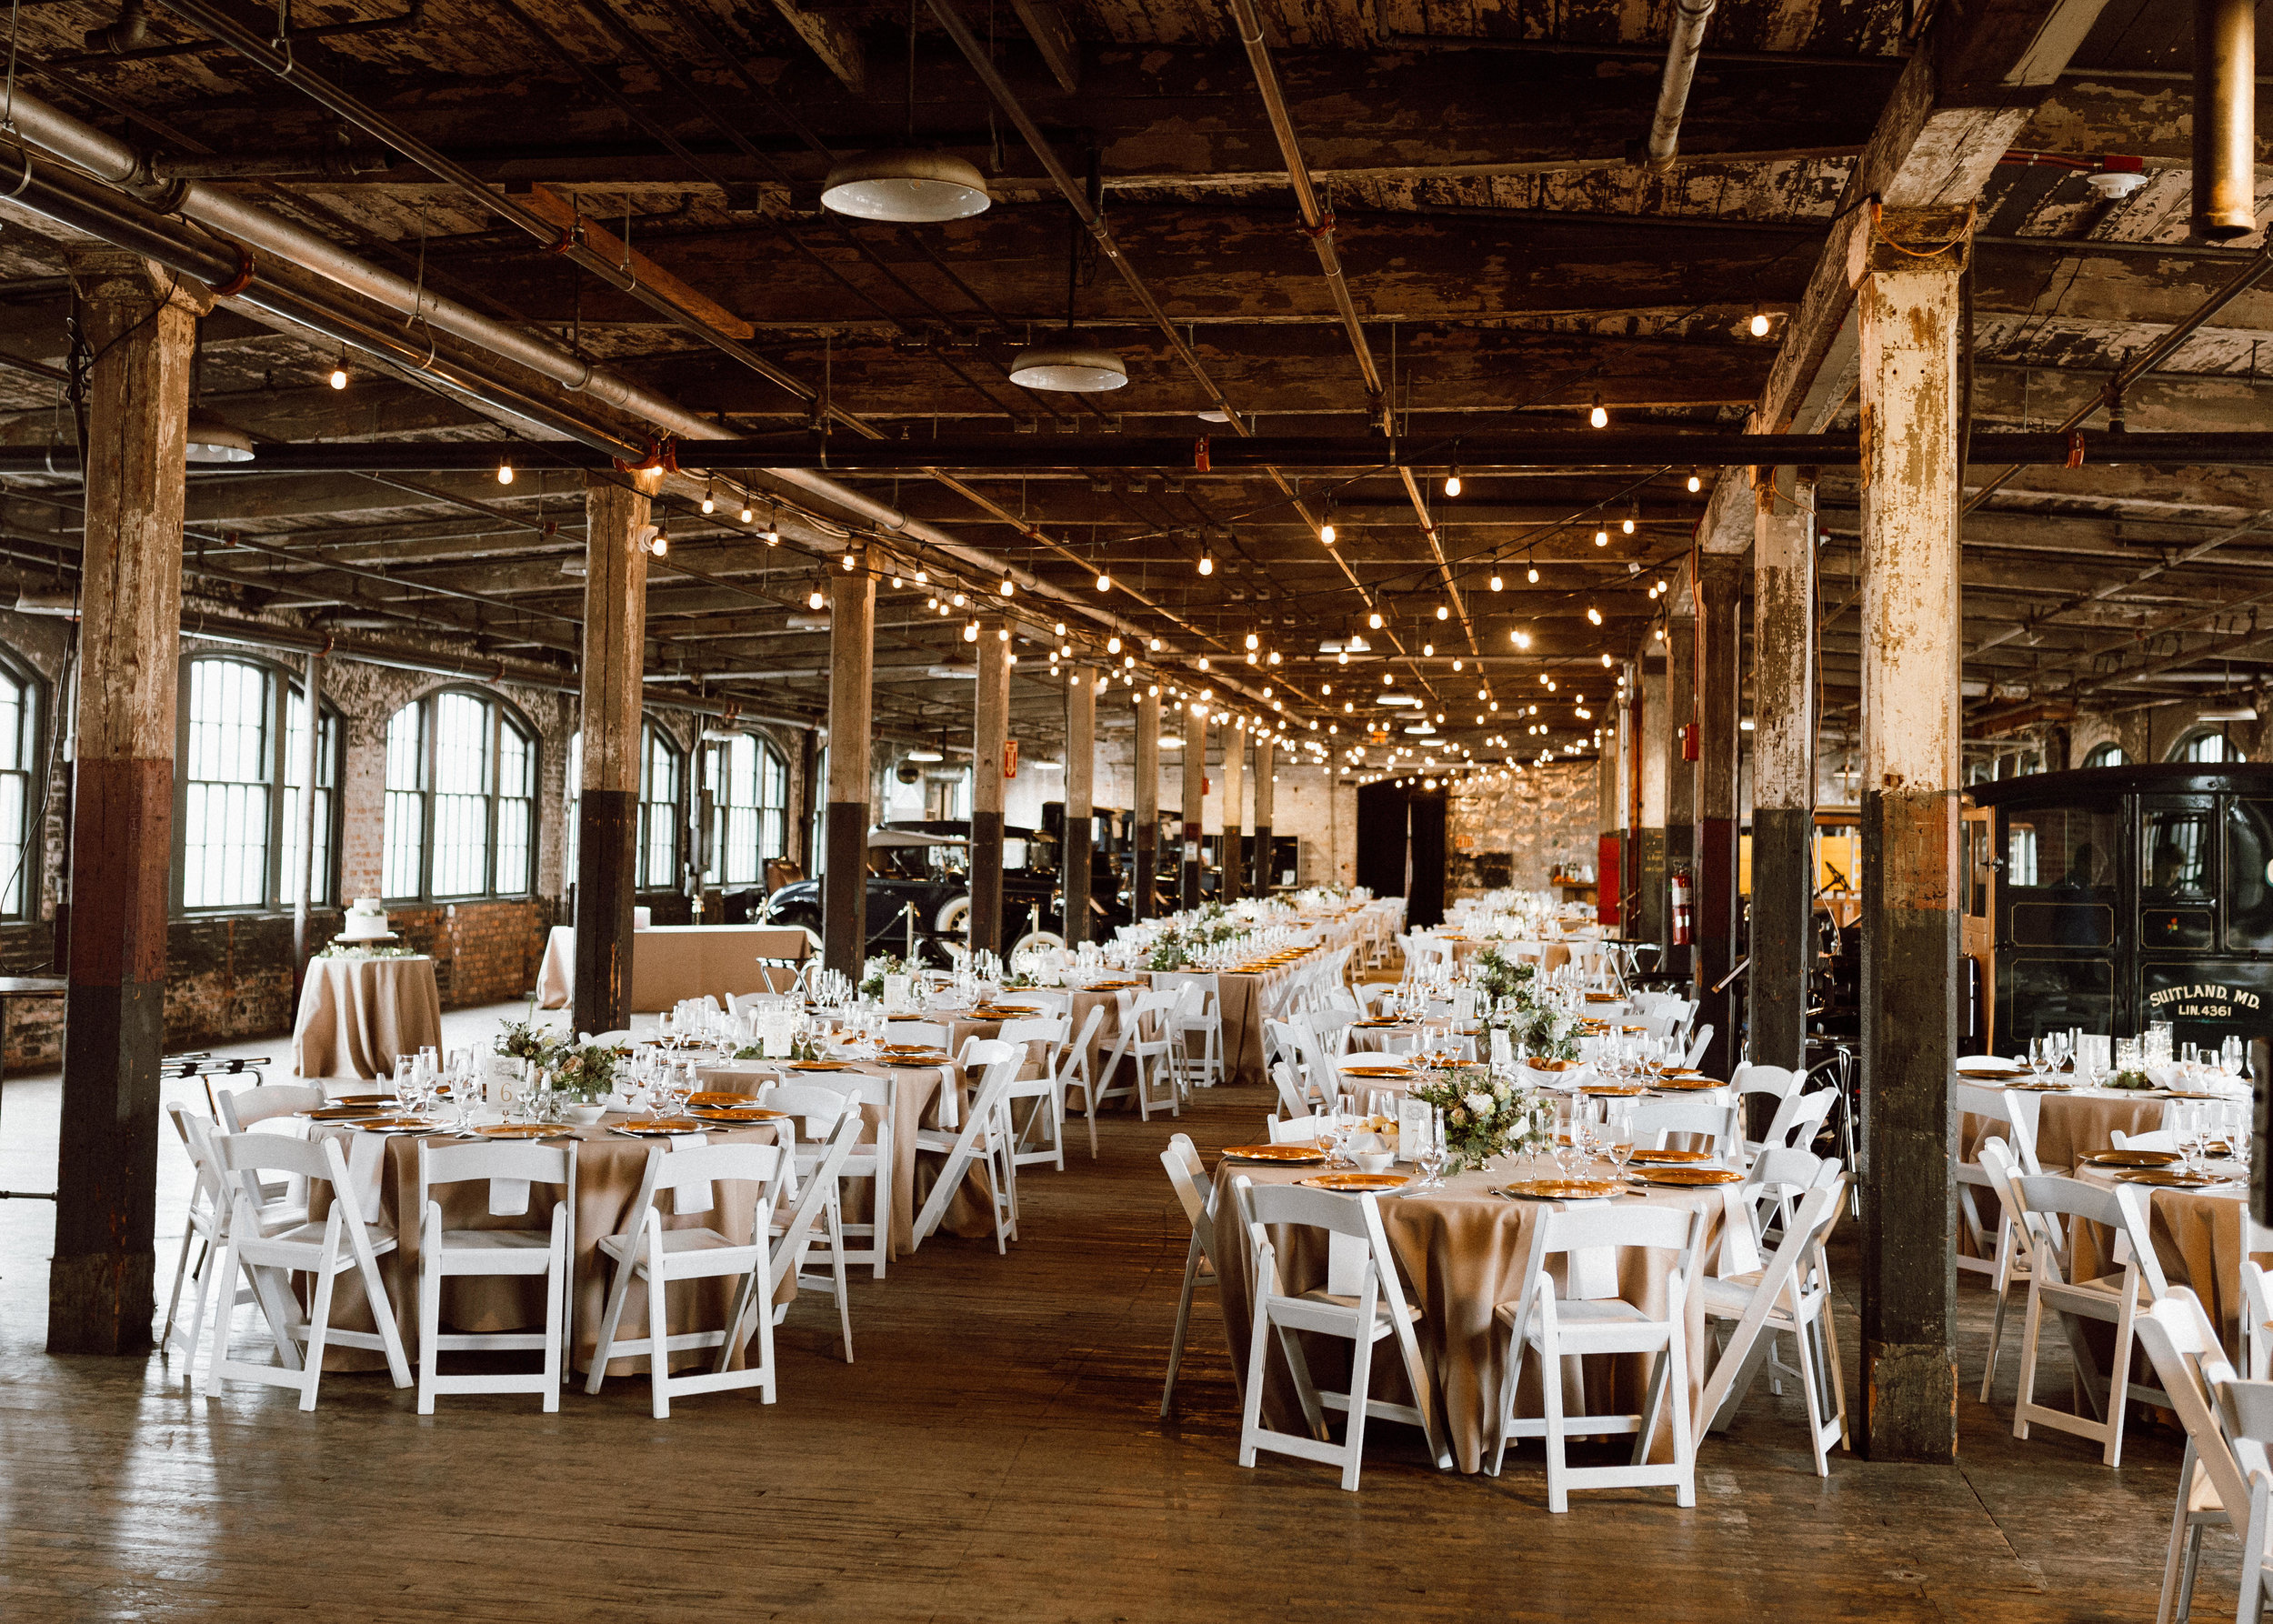 Katie_Vonasek_Photography_Ford_Piquette_Plant_Wedding_Detroit81.JPG